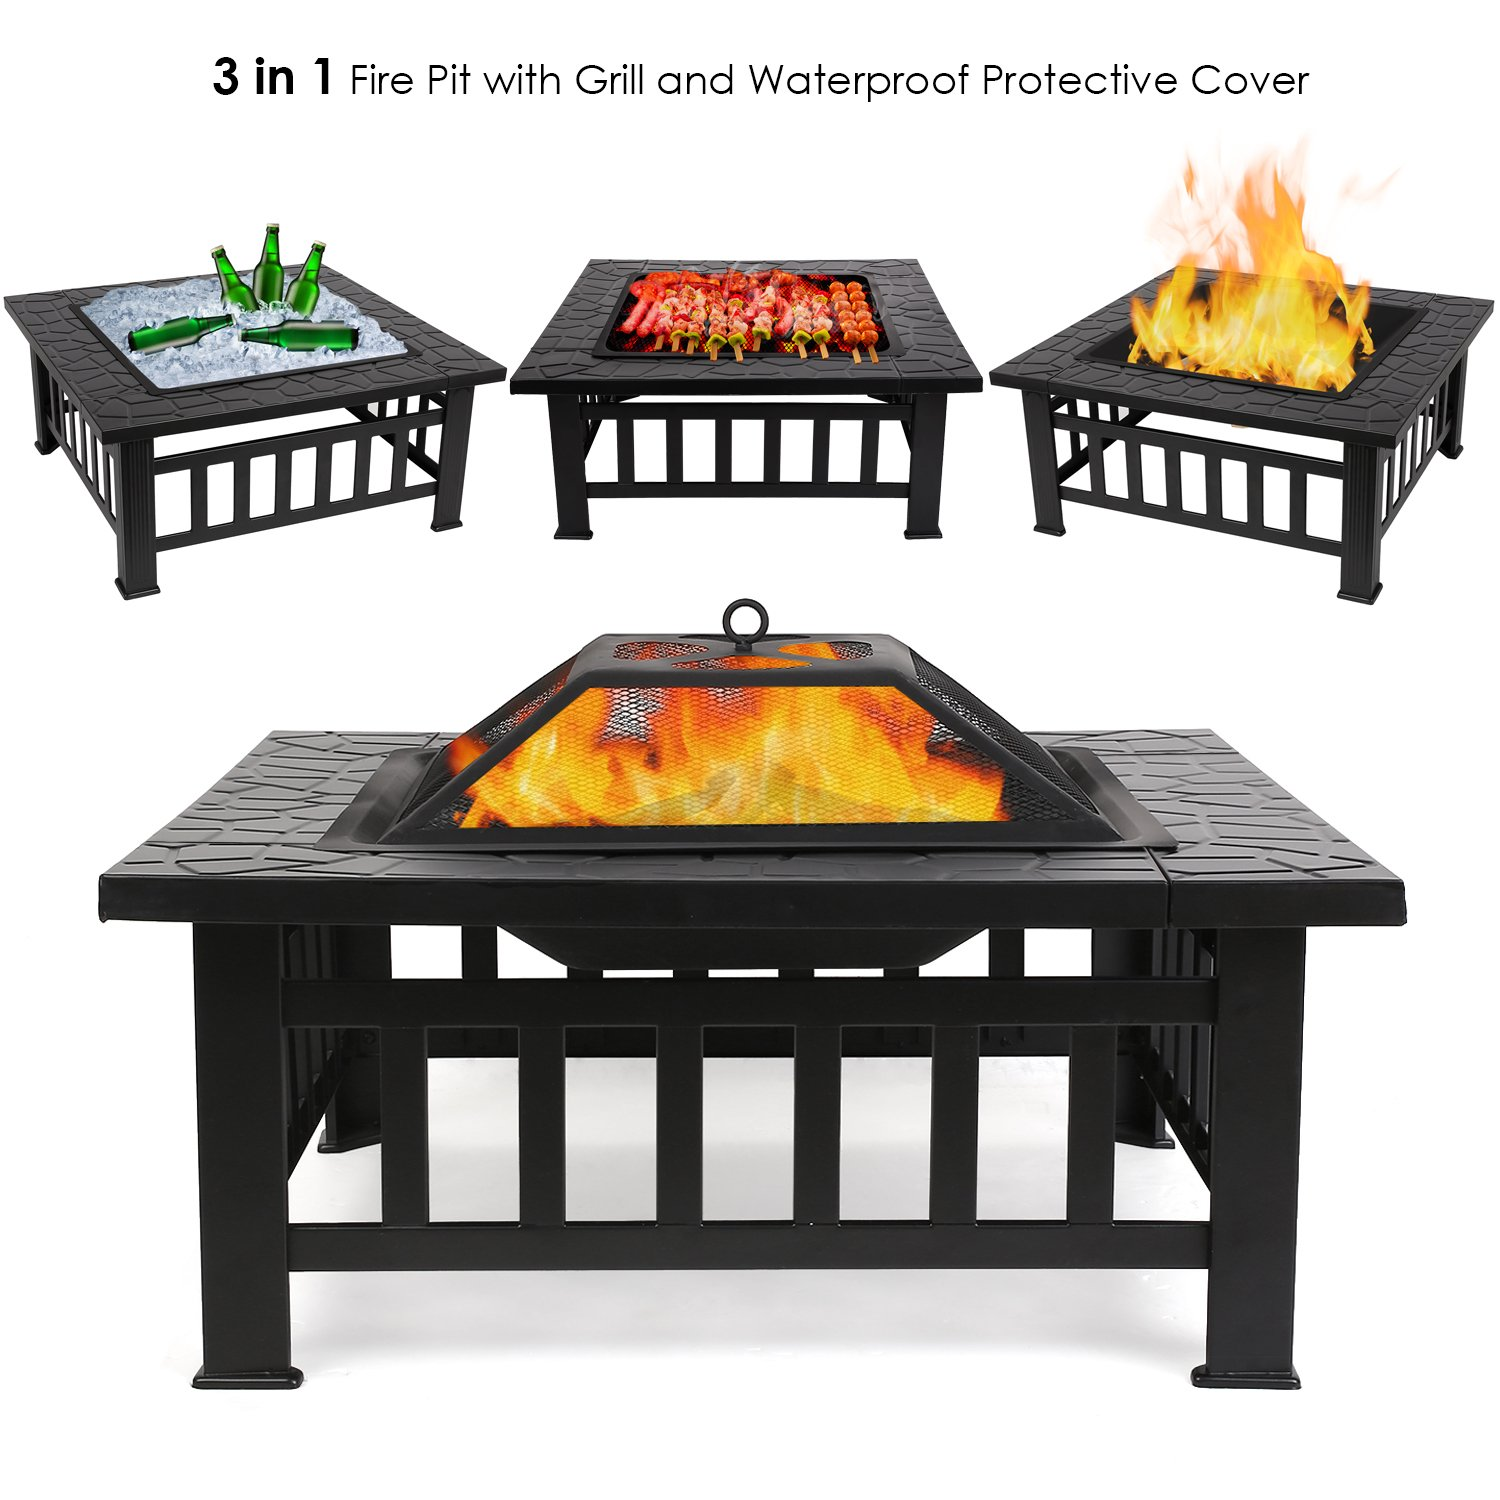 FEMOR Large 3 in 1 Fire Pit with BBQ Grill Shelf,Outdoor Metal Brazier Square Table Firepit Garden Patio Heater/BBQ/Ice Pit with Waterproof Cover (Fire Pit & Grill)